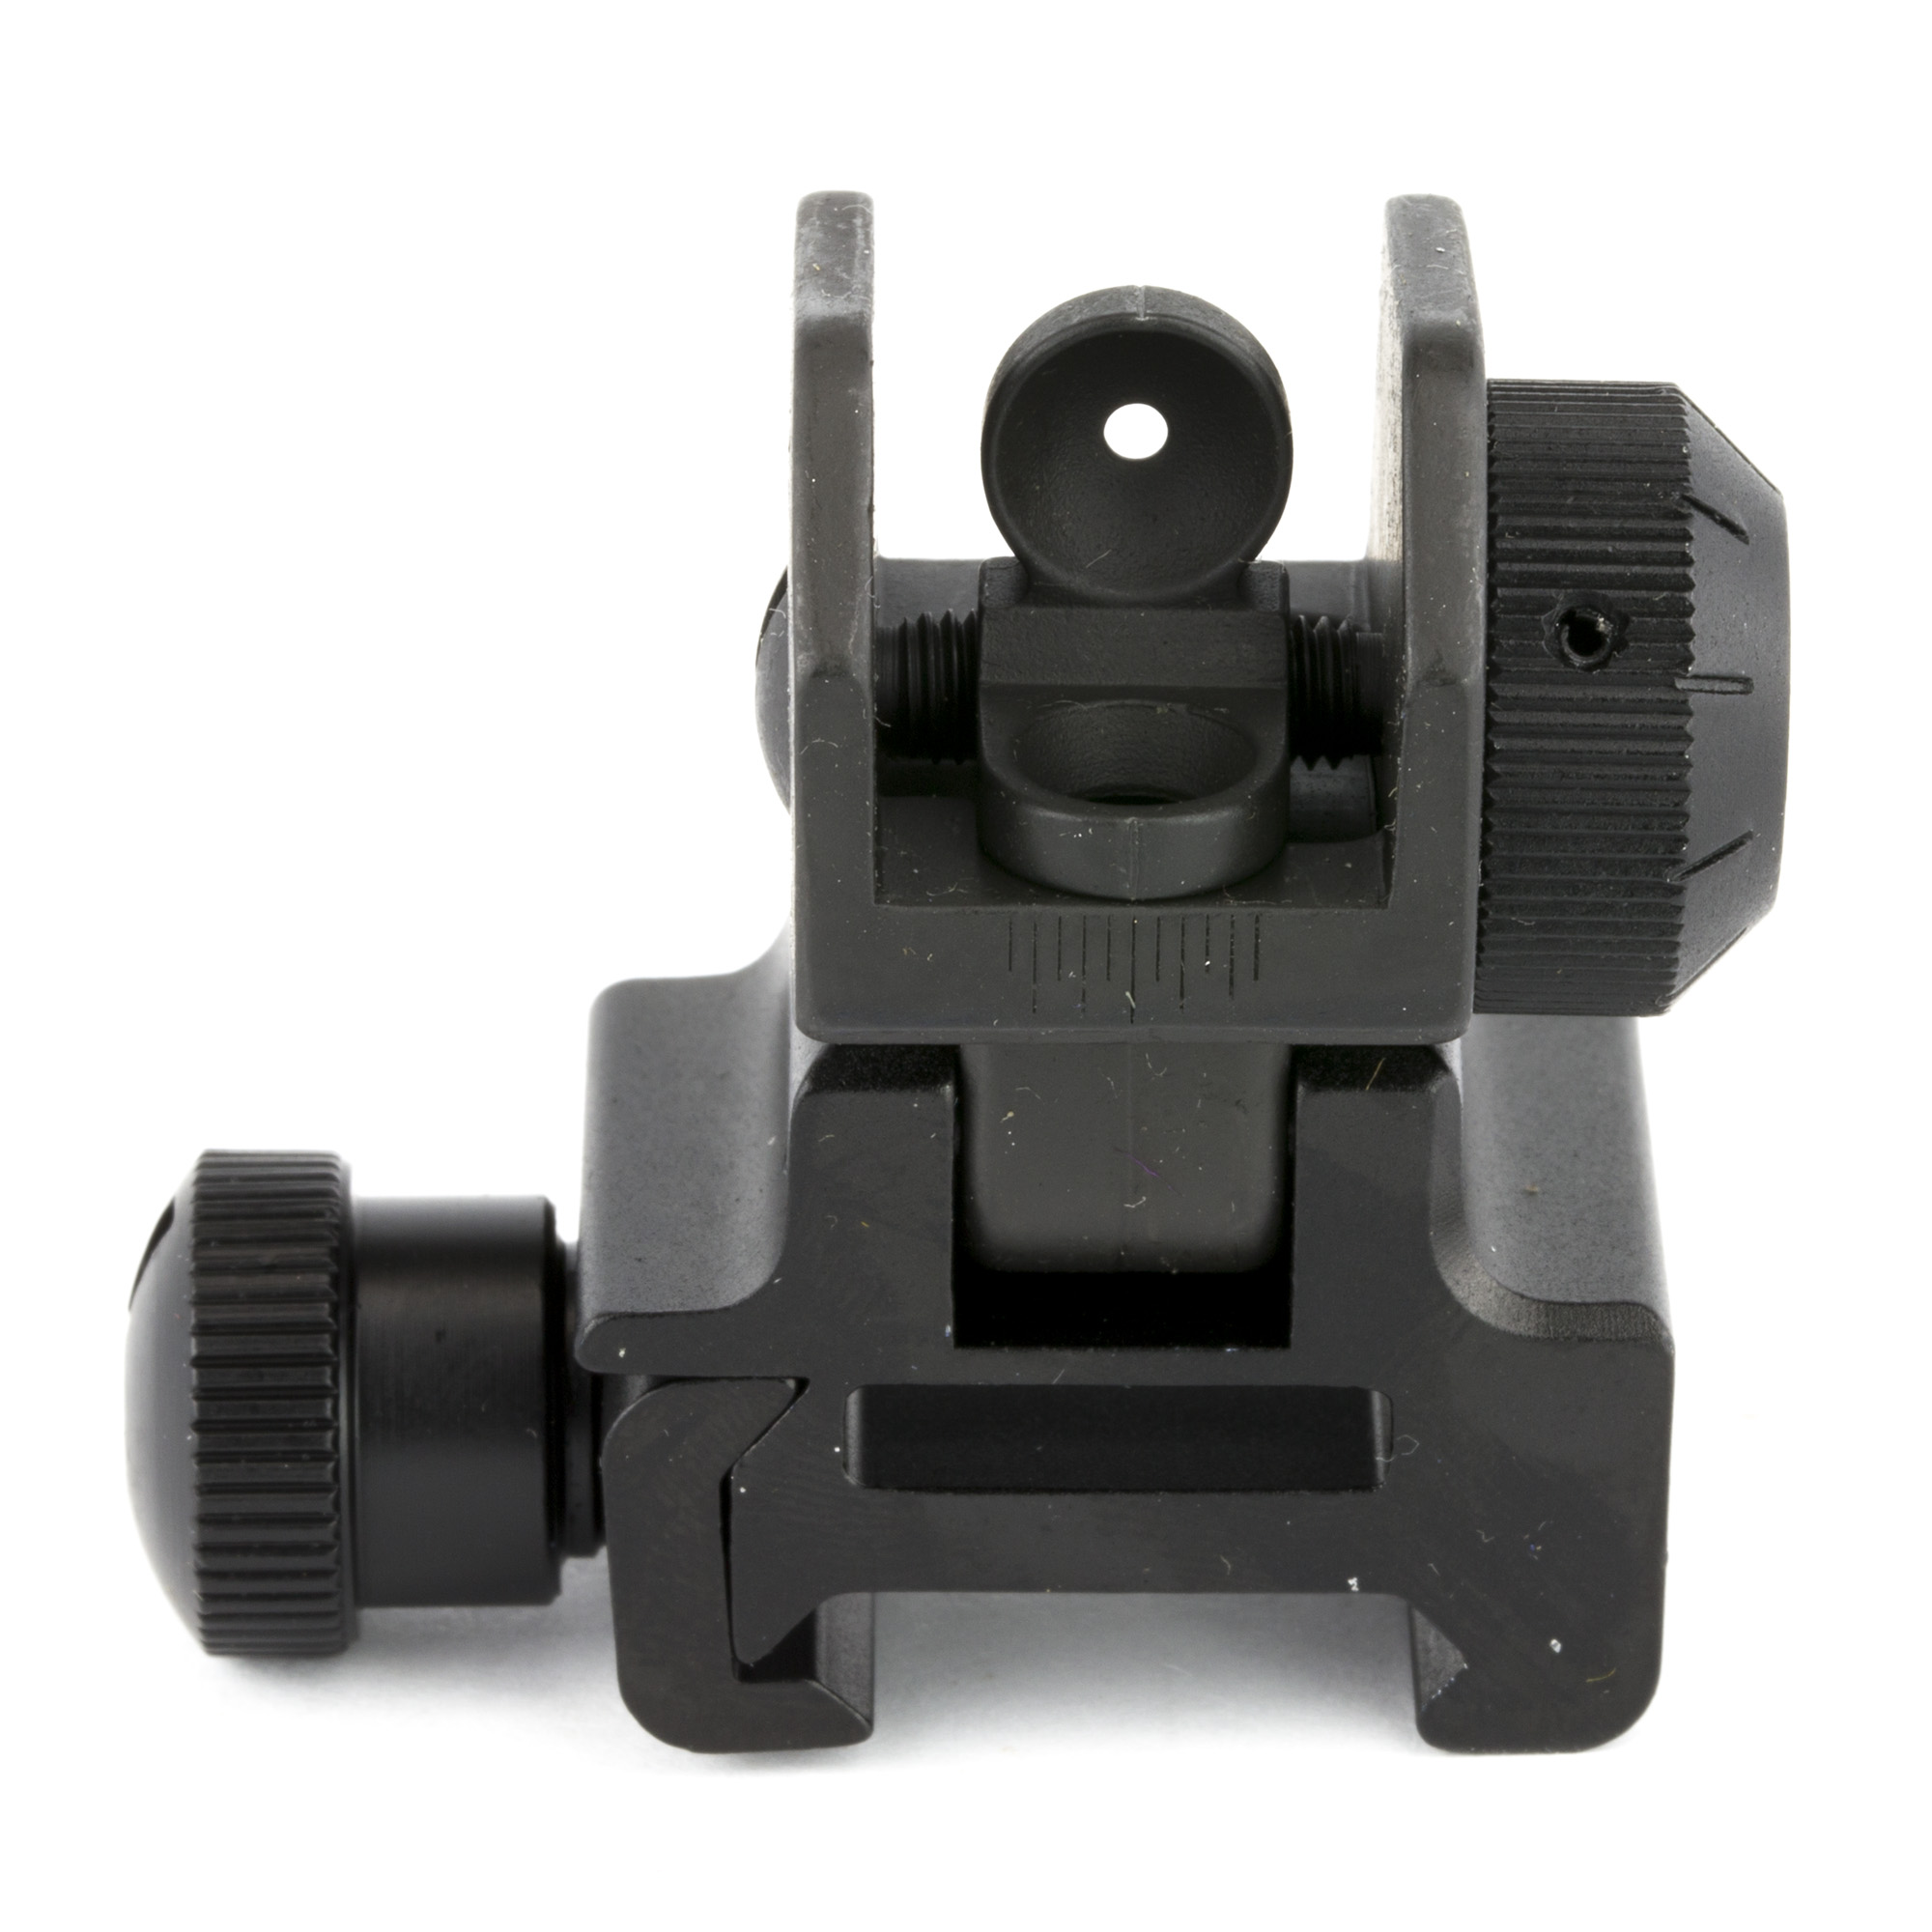 Leapers UTG Flip-up Tactical Rear Sight Complete with Dual Aiming Aperture MNT-951 fits all flat tops with an integrated Picatinny / Weaver mounting deck. Leapers UTG Tactical Flip-up Rear Sight locks in securely enough to withstand demanding conditions while retaining sight accuracy.